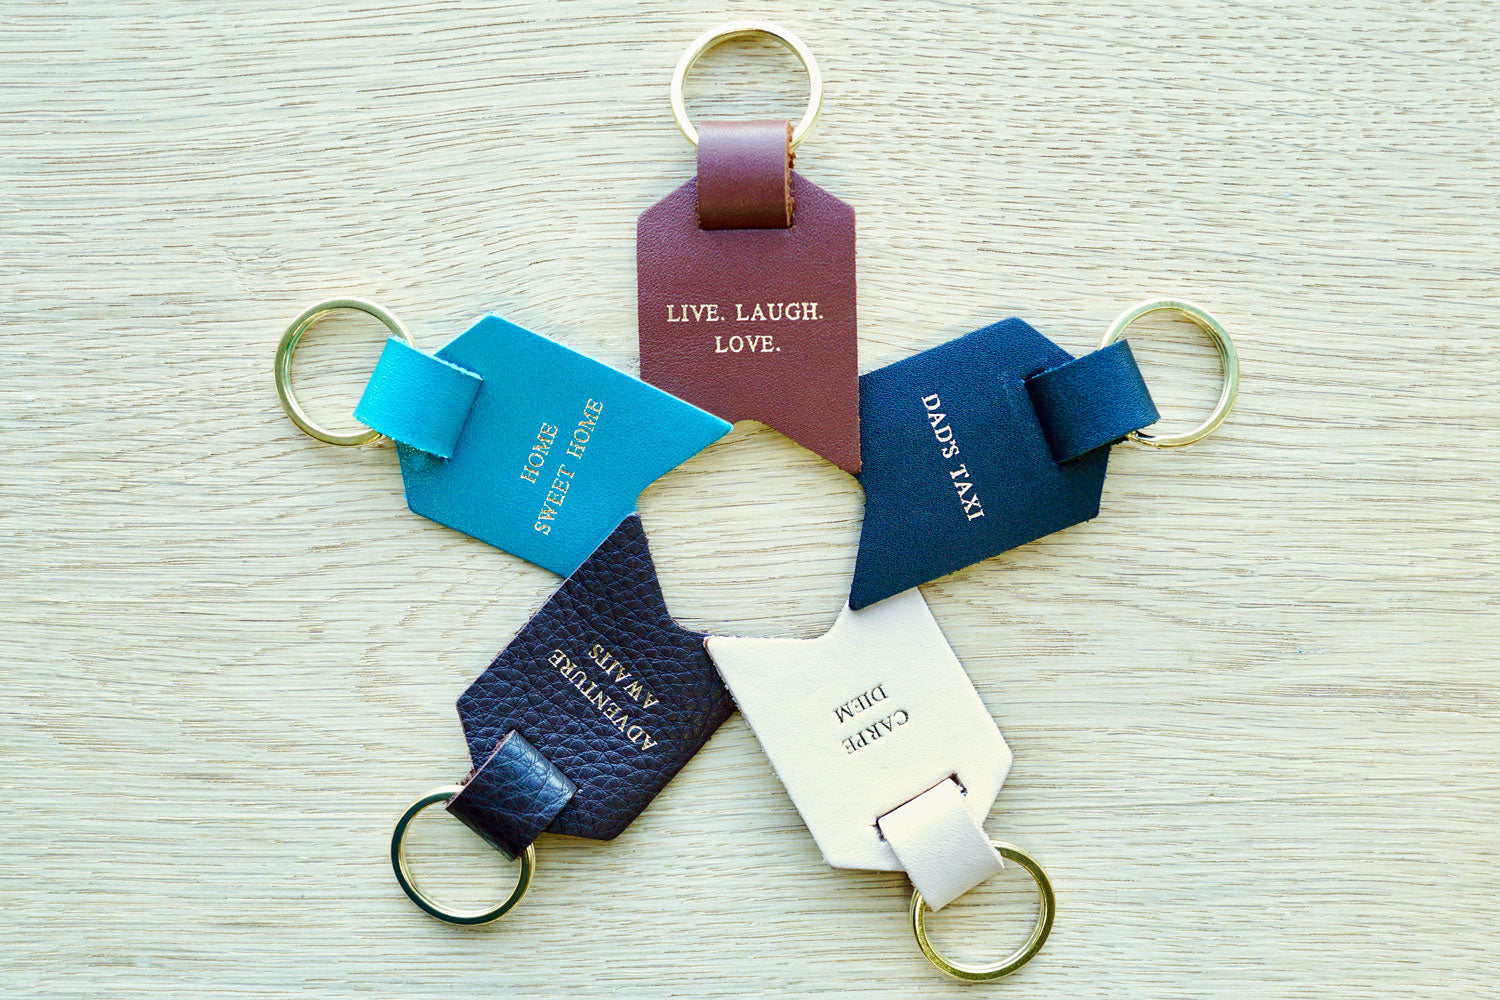 Personalised Keyrings for Dad from Bookshell Bindery, available in Black, Dark Brown, Light Brown, Turquoise blue and Cream